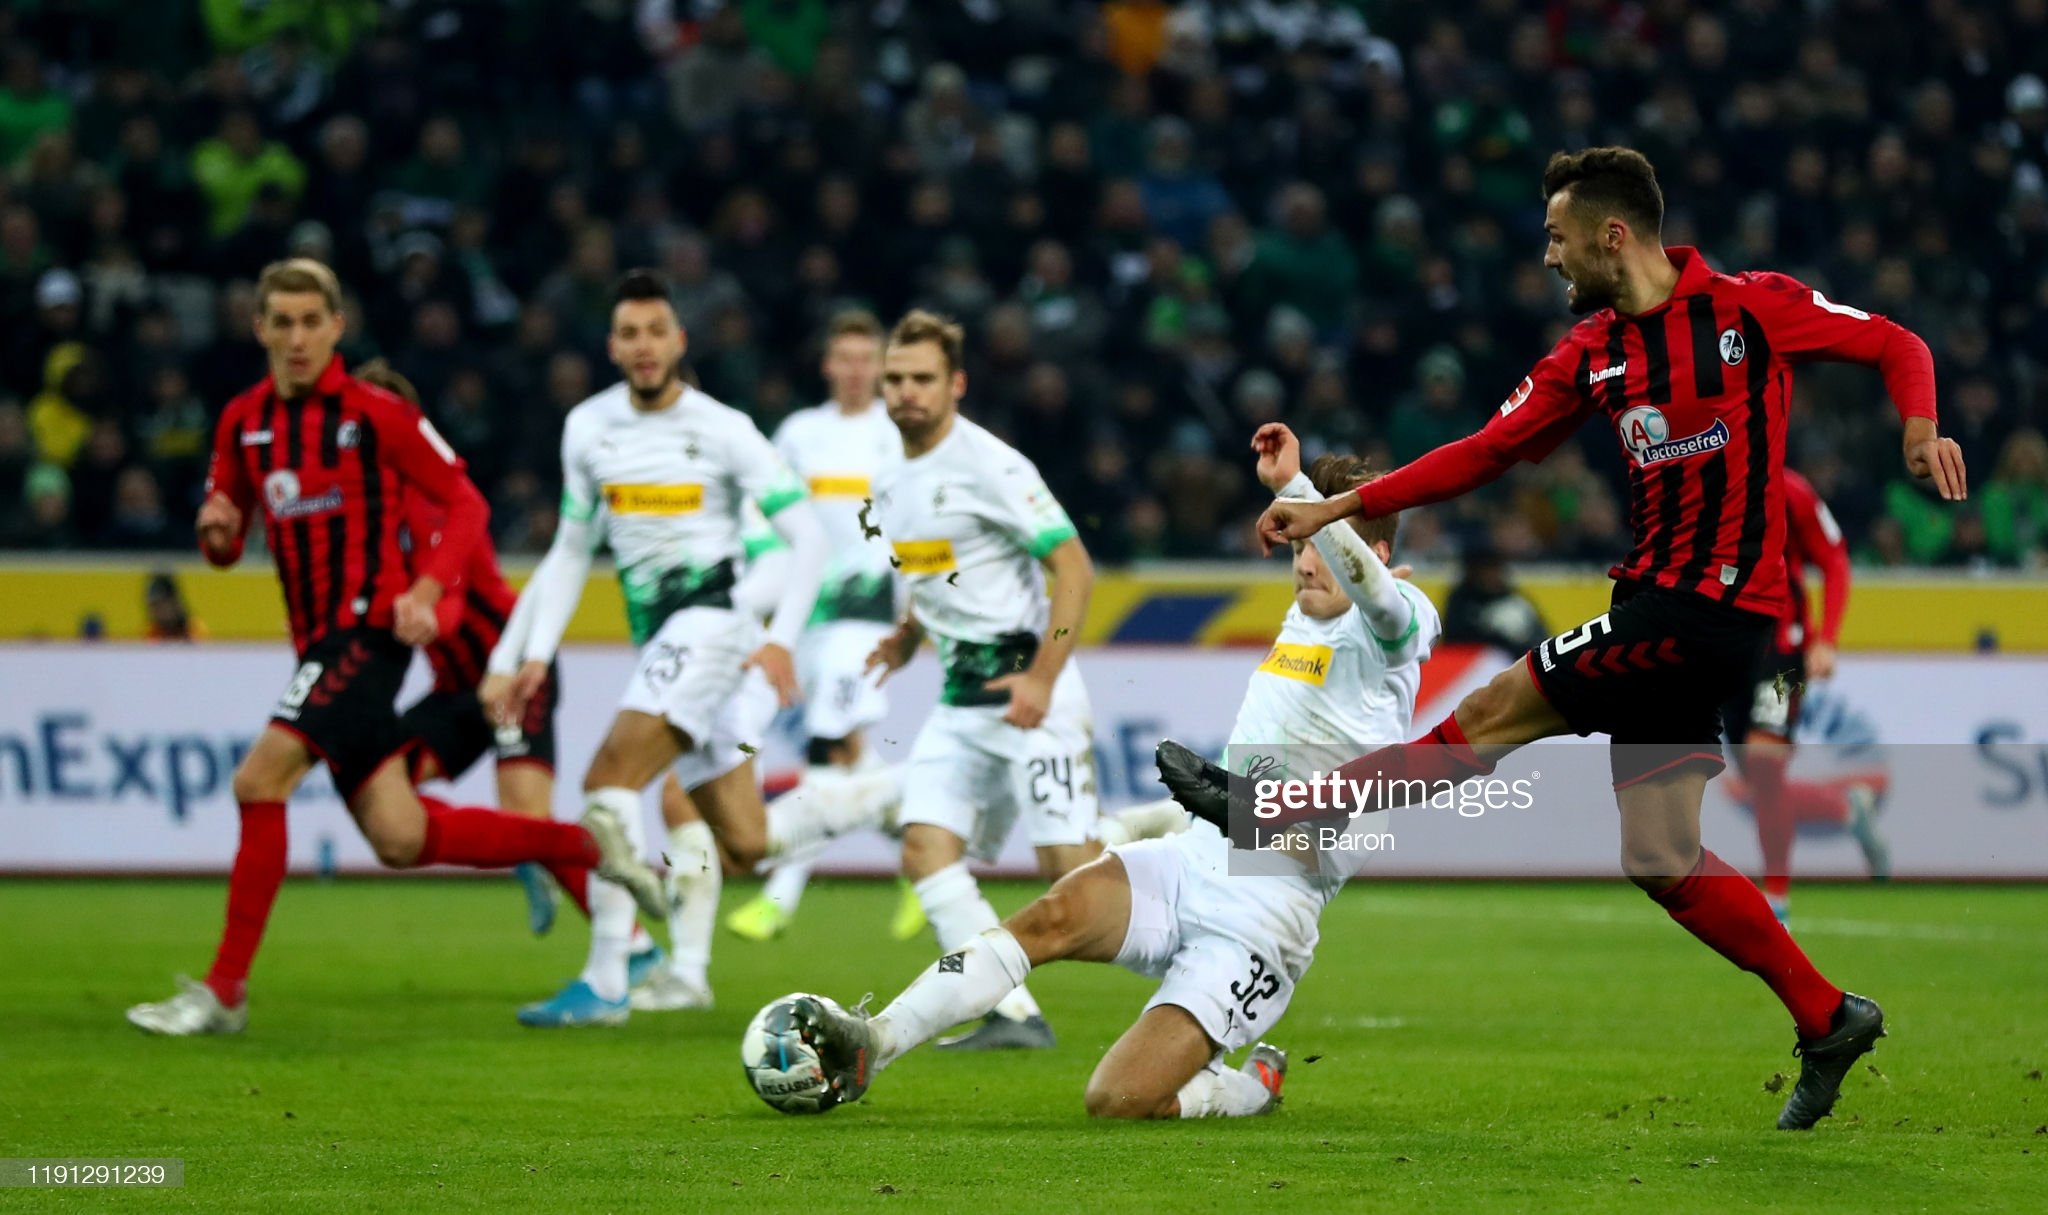 Freiburg vs Monchengladbach Preview, prediction and odds